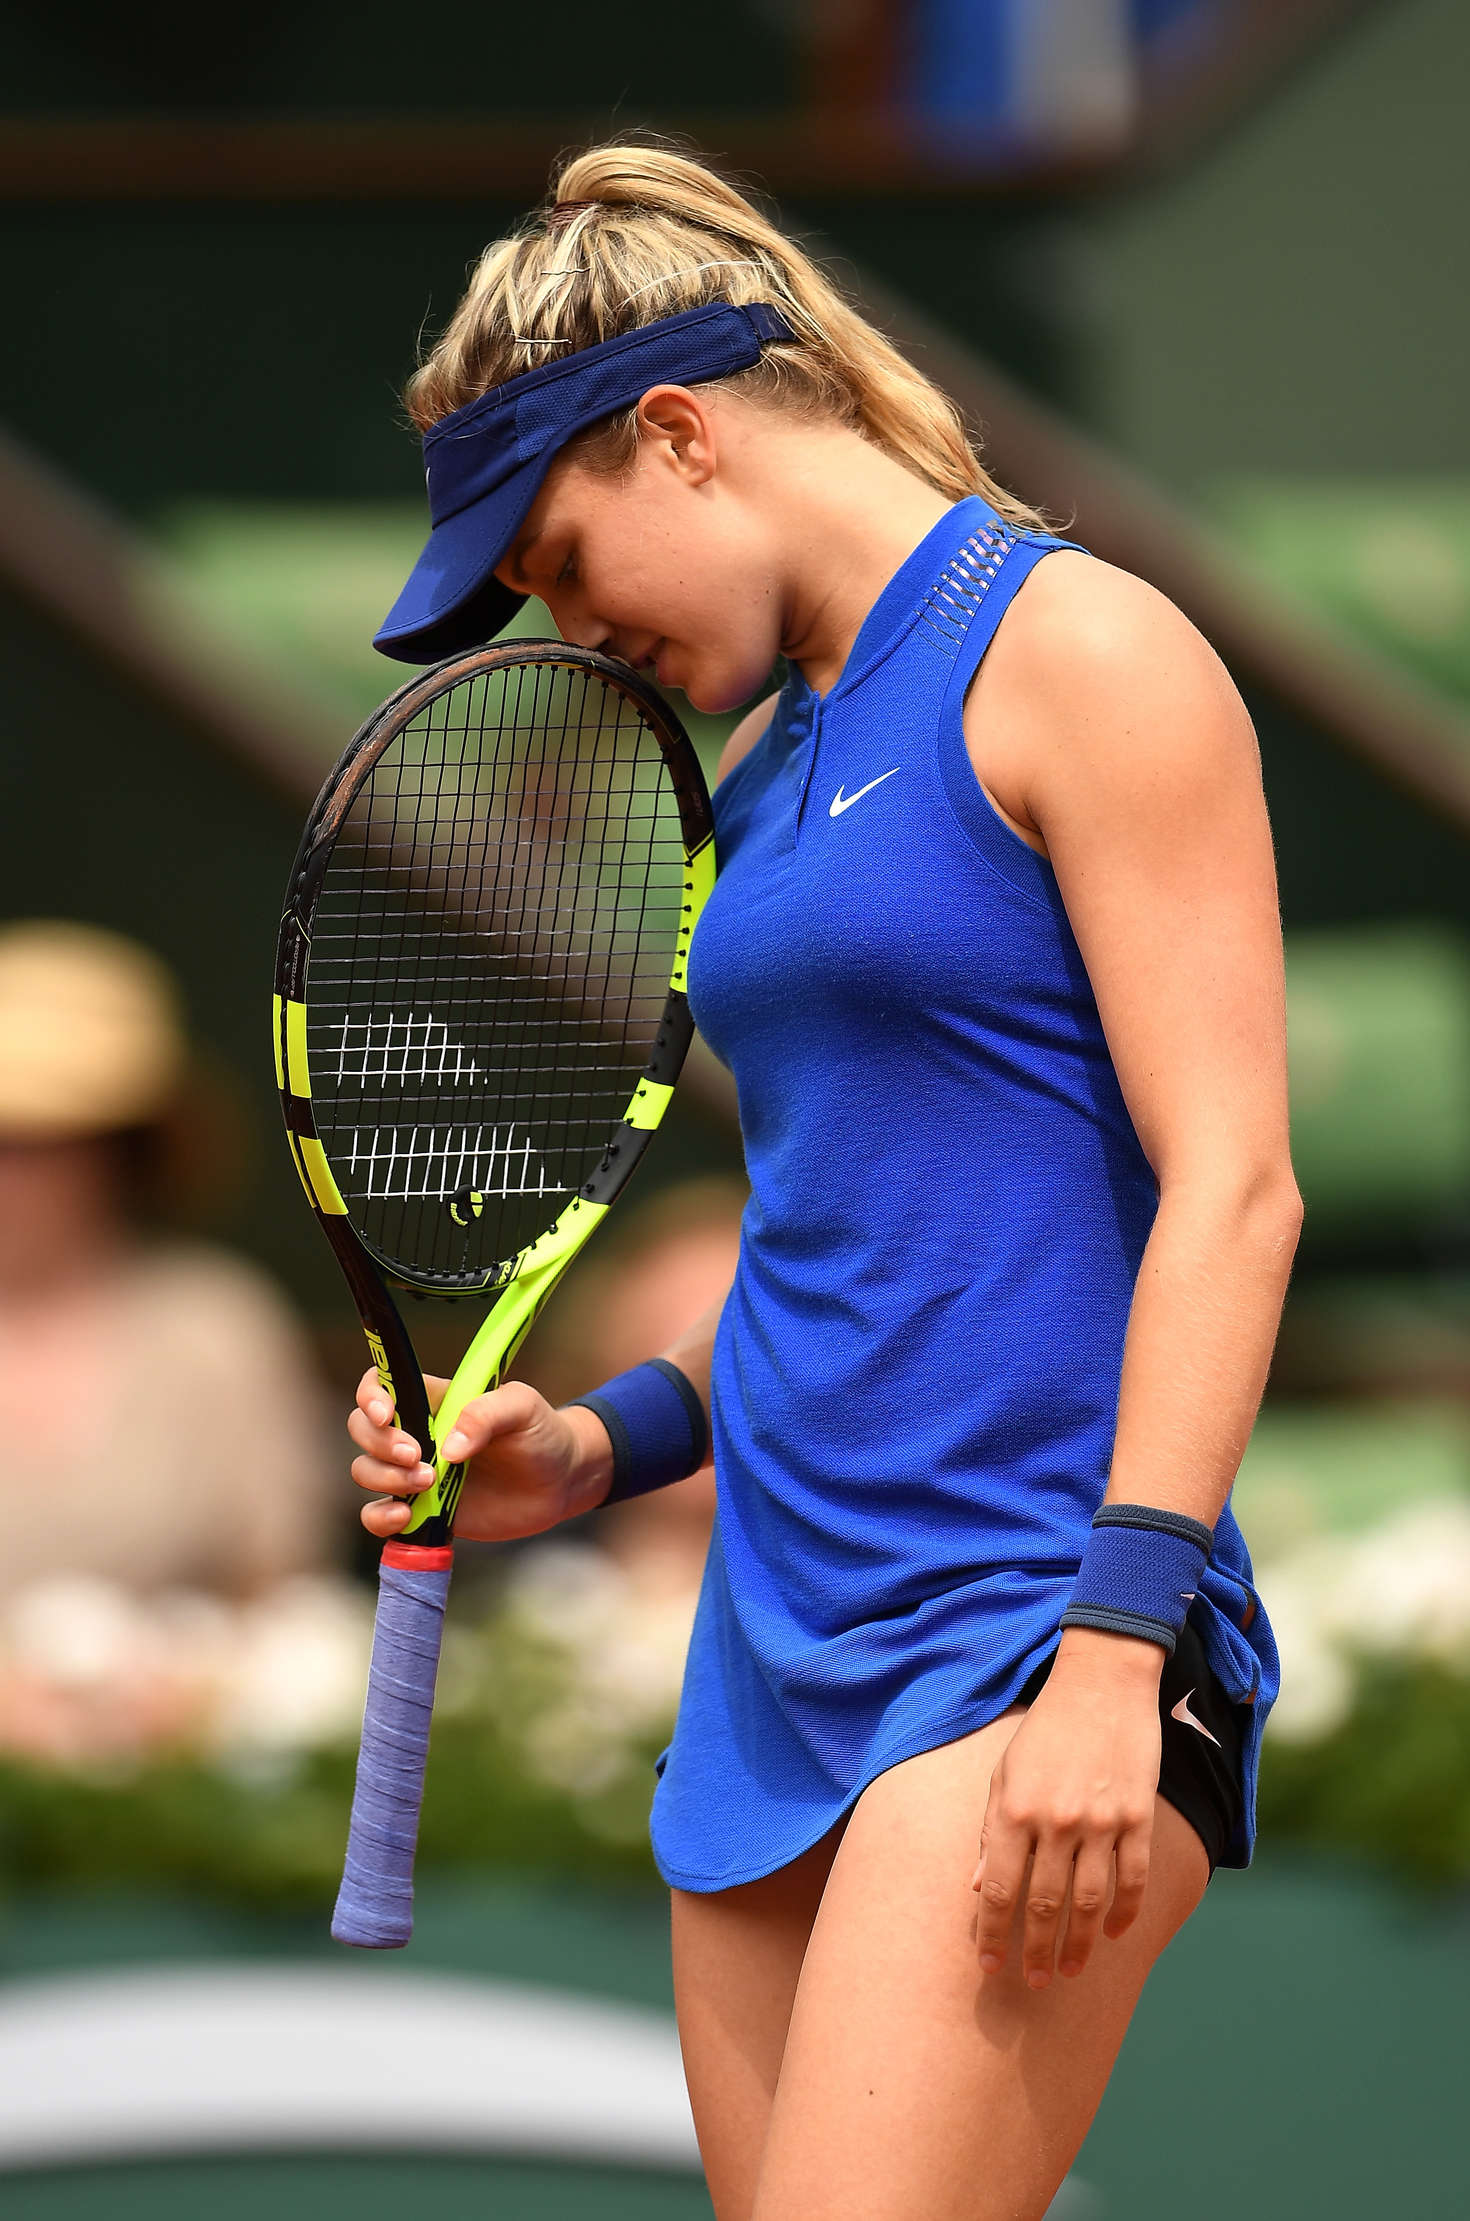 eugenie bouchard roland garros 2016 in paris gotceleb. Black Bedroom Furniture Sets. Home Design Ideas